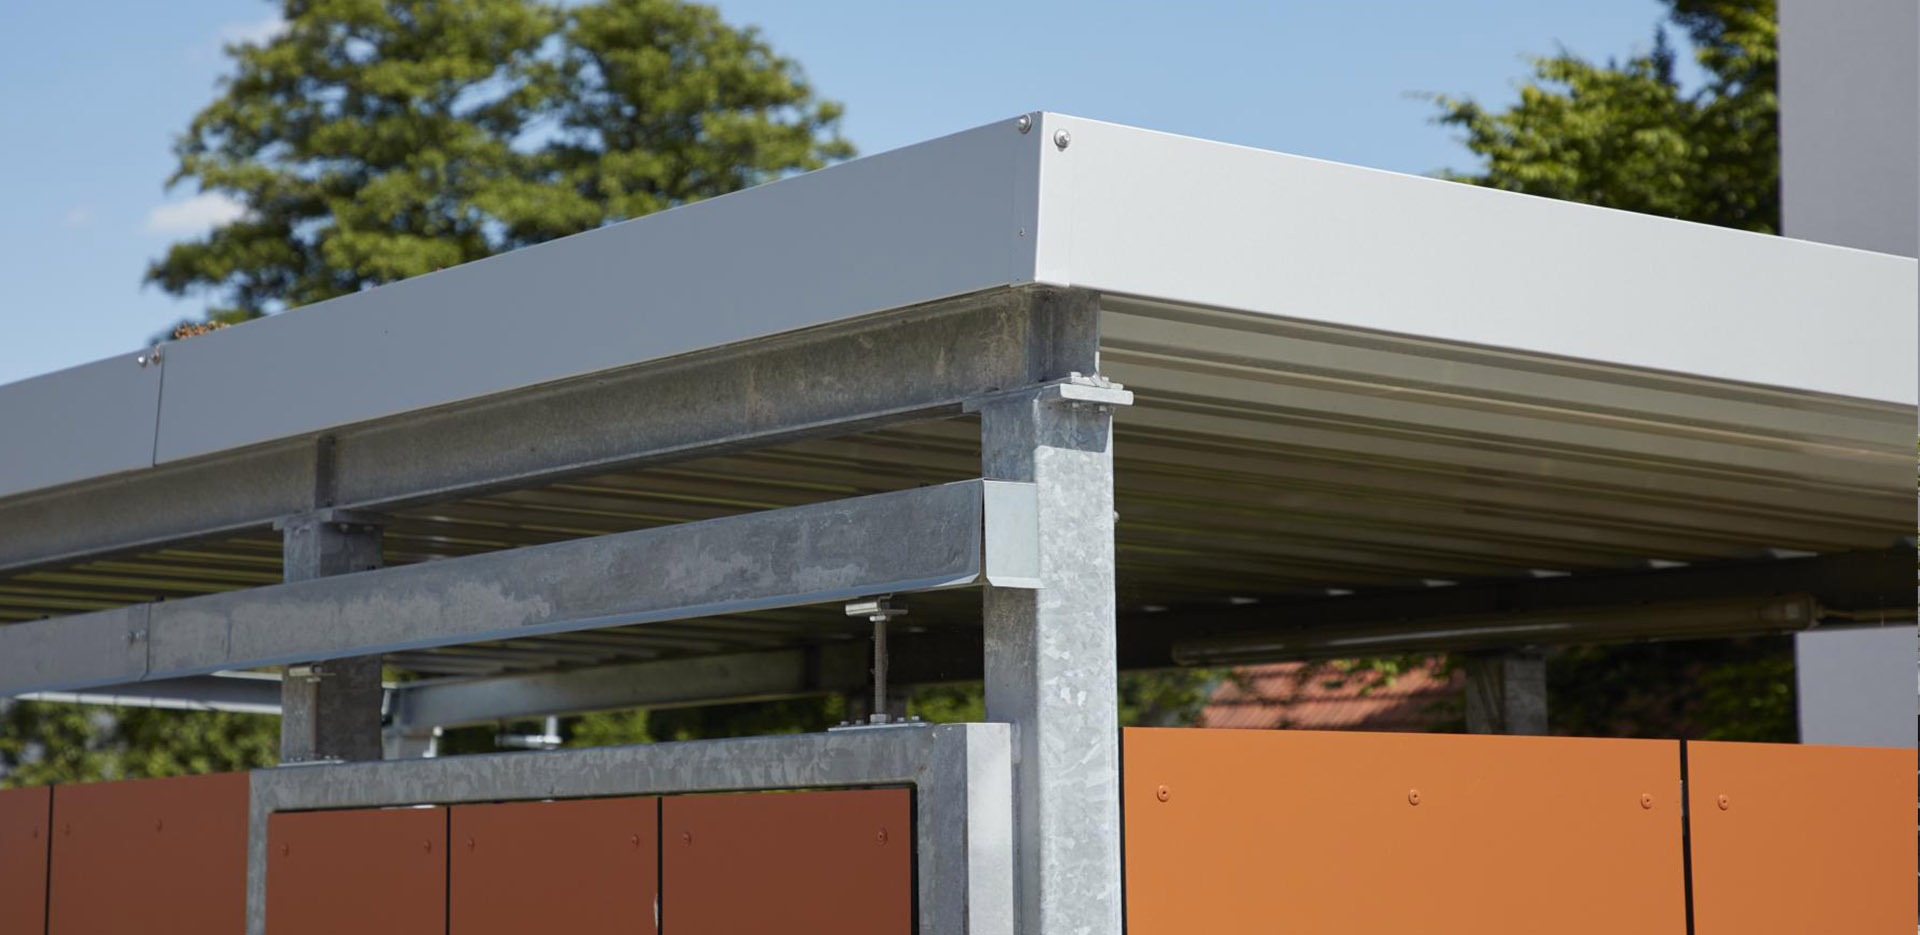 Referenzen projekt w systeme aus stahl for Carport detail